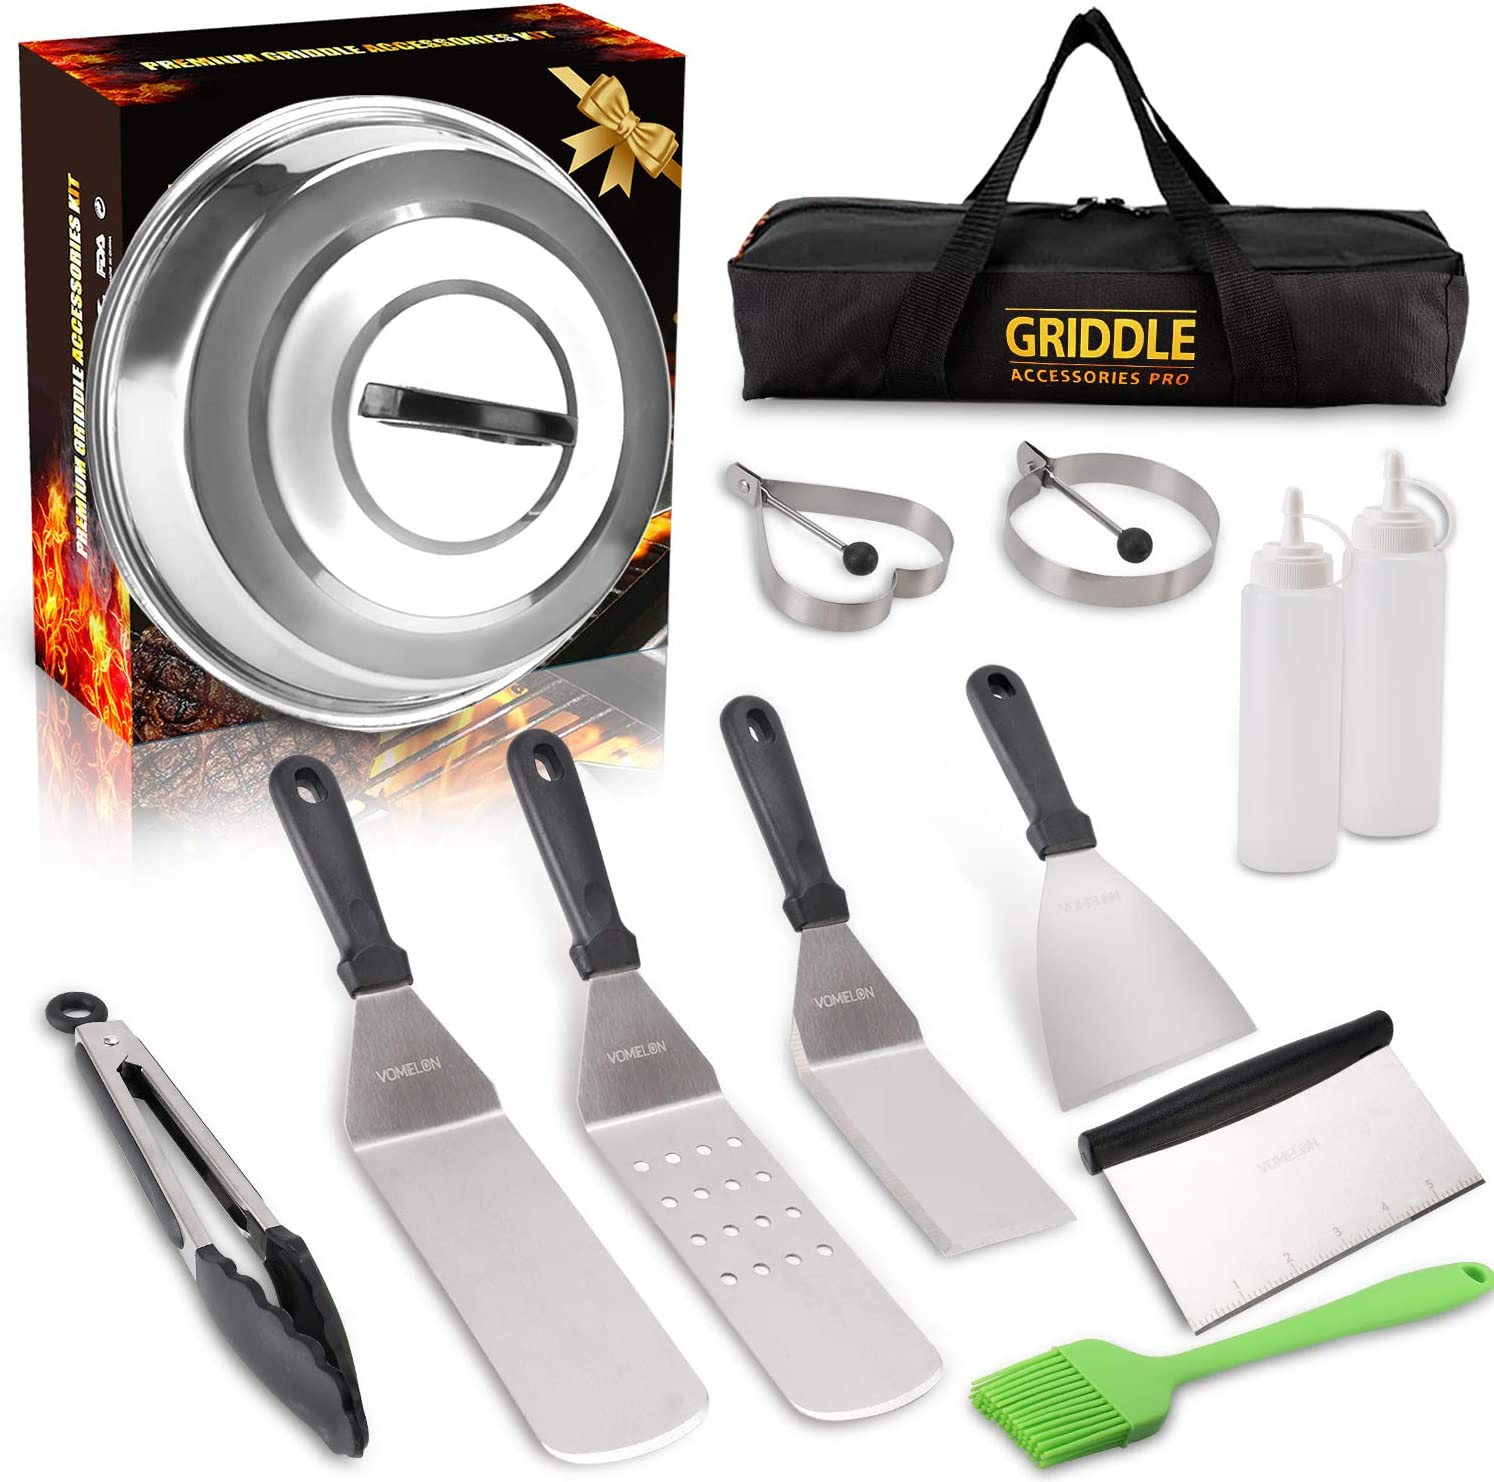 Vomelon Griddle Accessories Kit,Flat Top Griddle Tools Set for Camp Chef Grilling Hibachi Tool Set with Basting Cover Spatula, Scraper, Bottle, Tongs, Egg Rings Carring Bags-Black